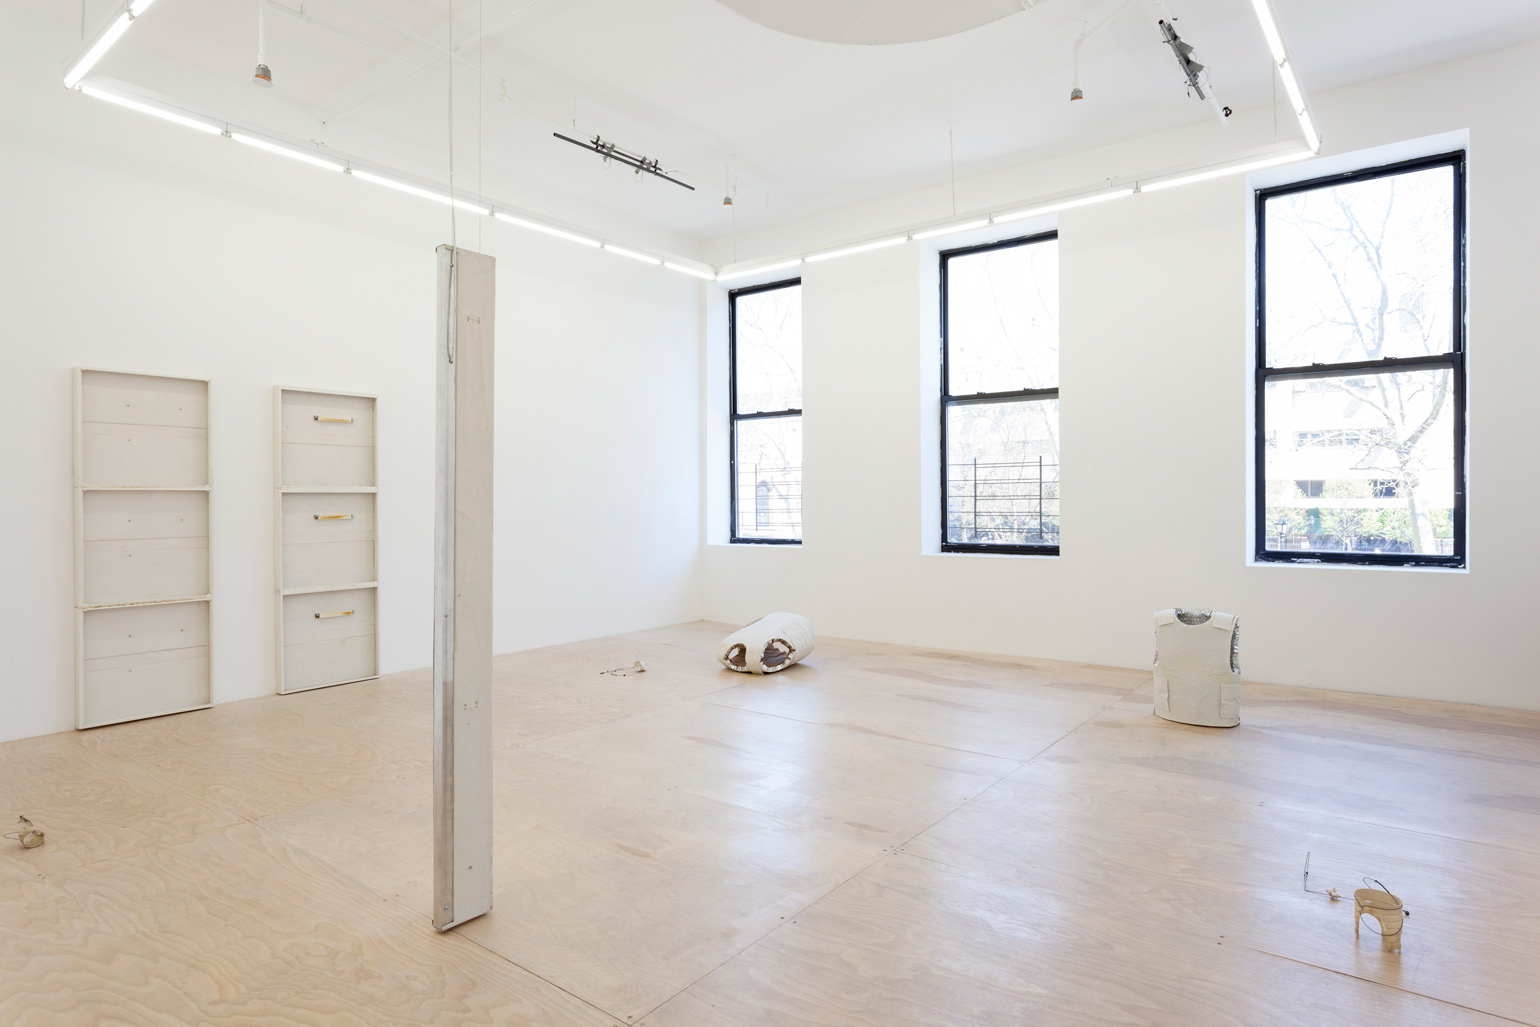 Hester - Installation view of σ, 3 2015